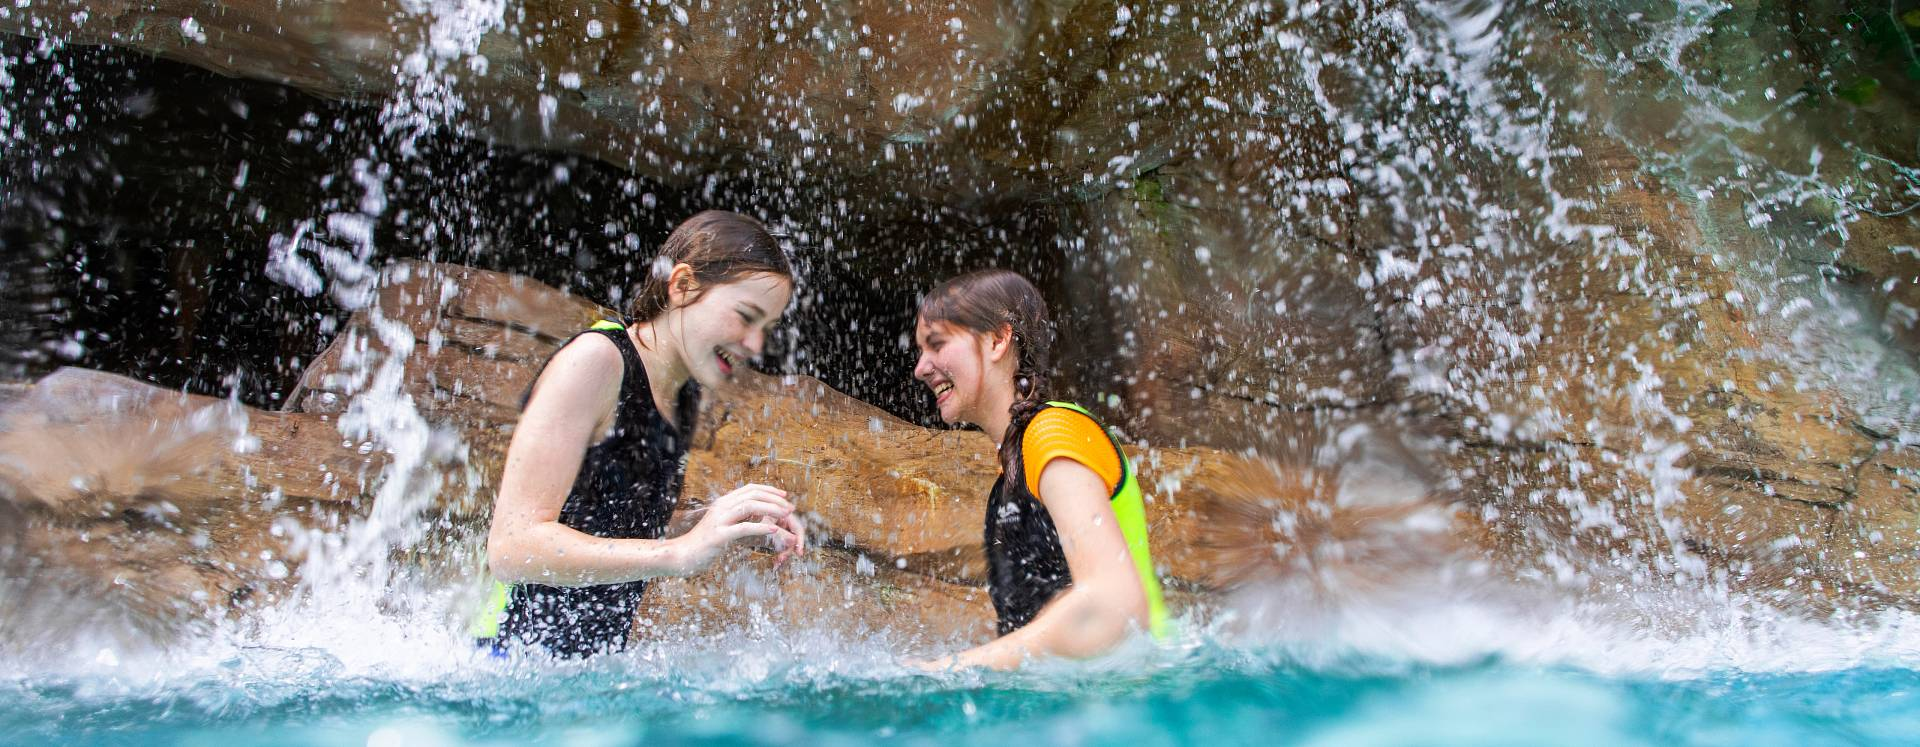 Teenagers splashing in the lazy river at Discovery Cove in Orlando